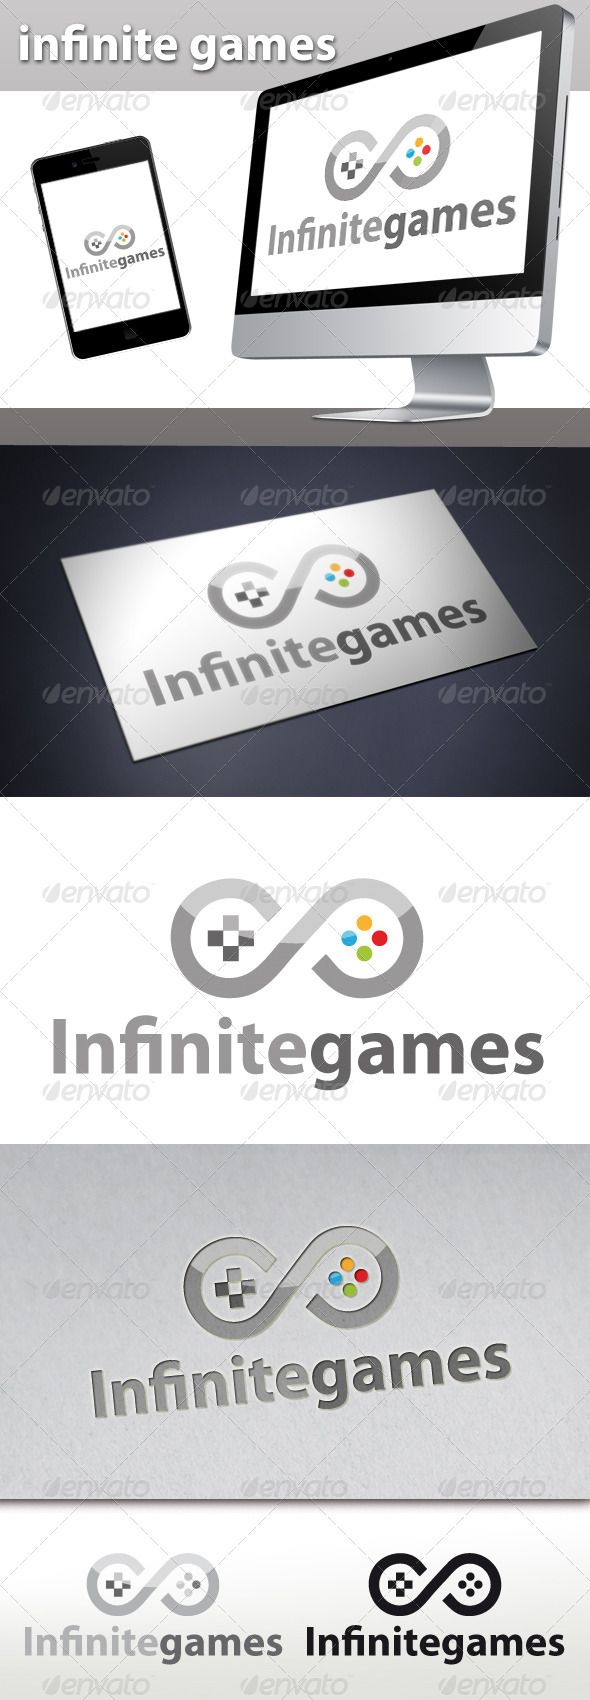 Infinite Games  - Logo Design Template Vector #logotype Download it here: http://graphicriver.net/item/infinite-games-logo/3266128?s_rank=119?ref=nexion